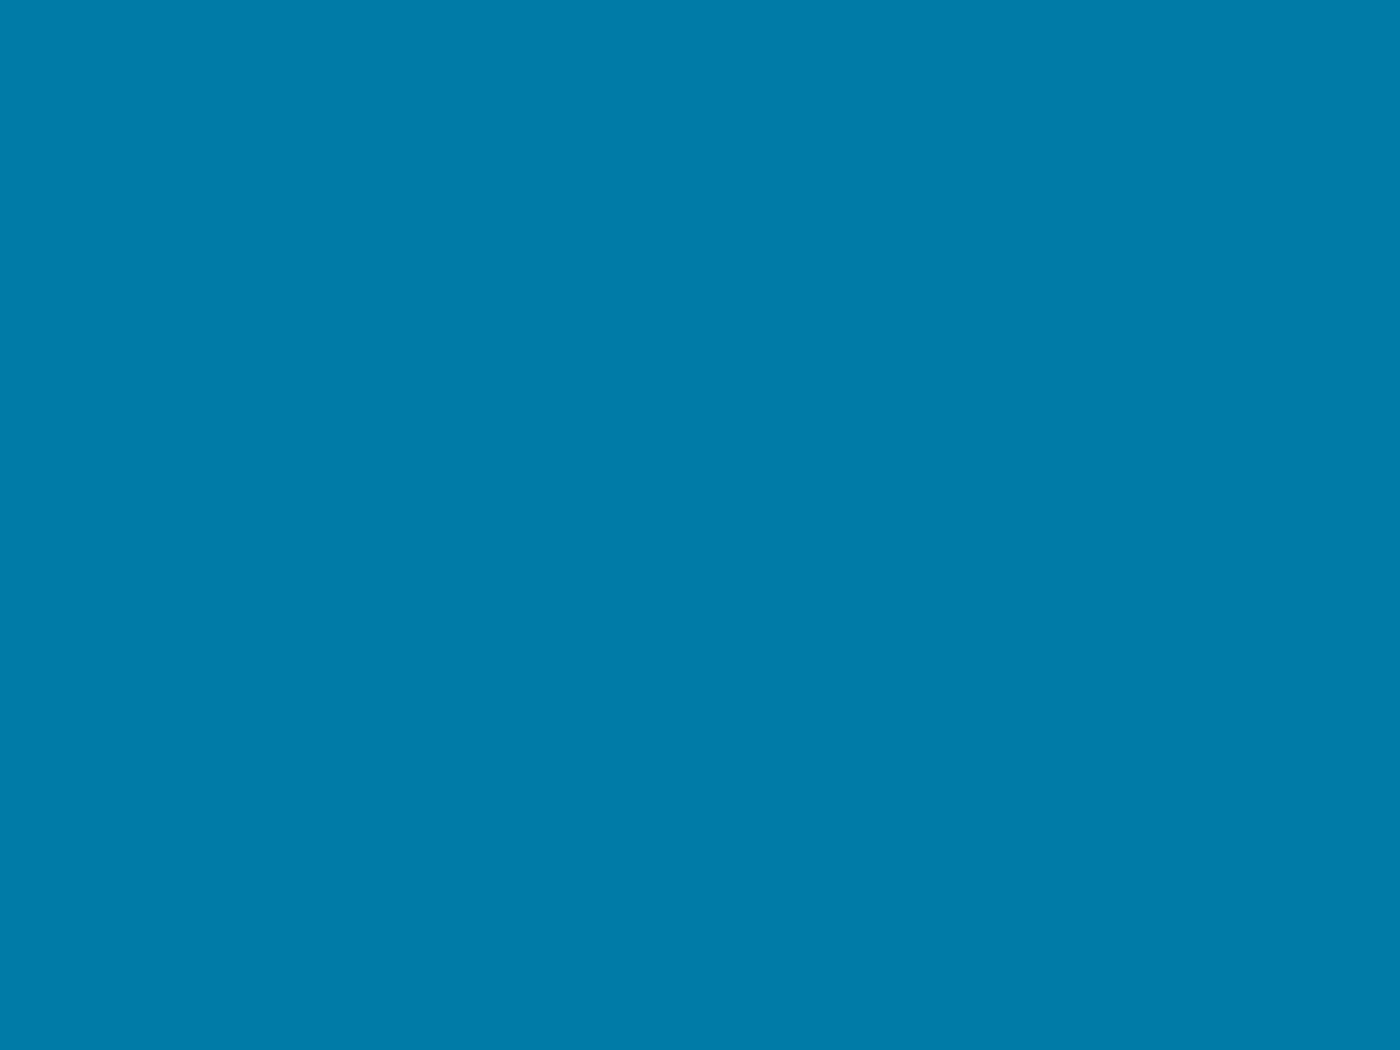 1400x1050 Cerulean Solid Color Background